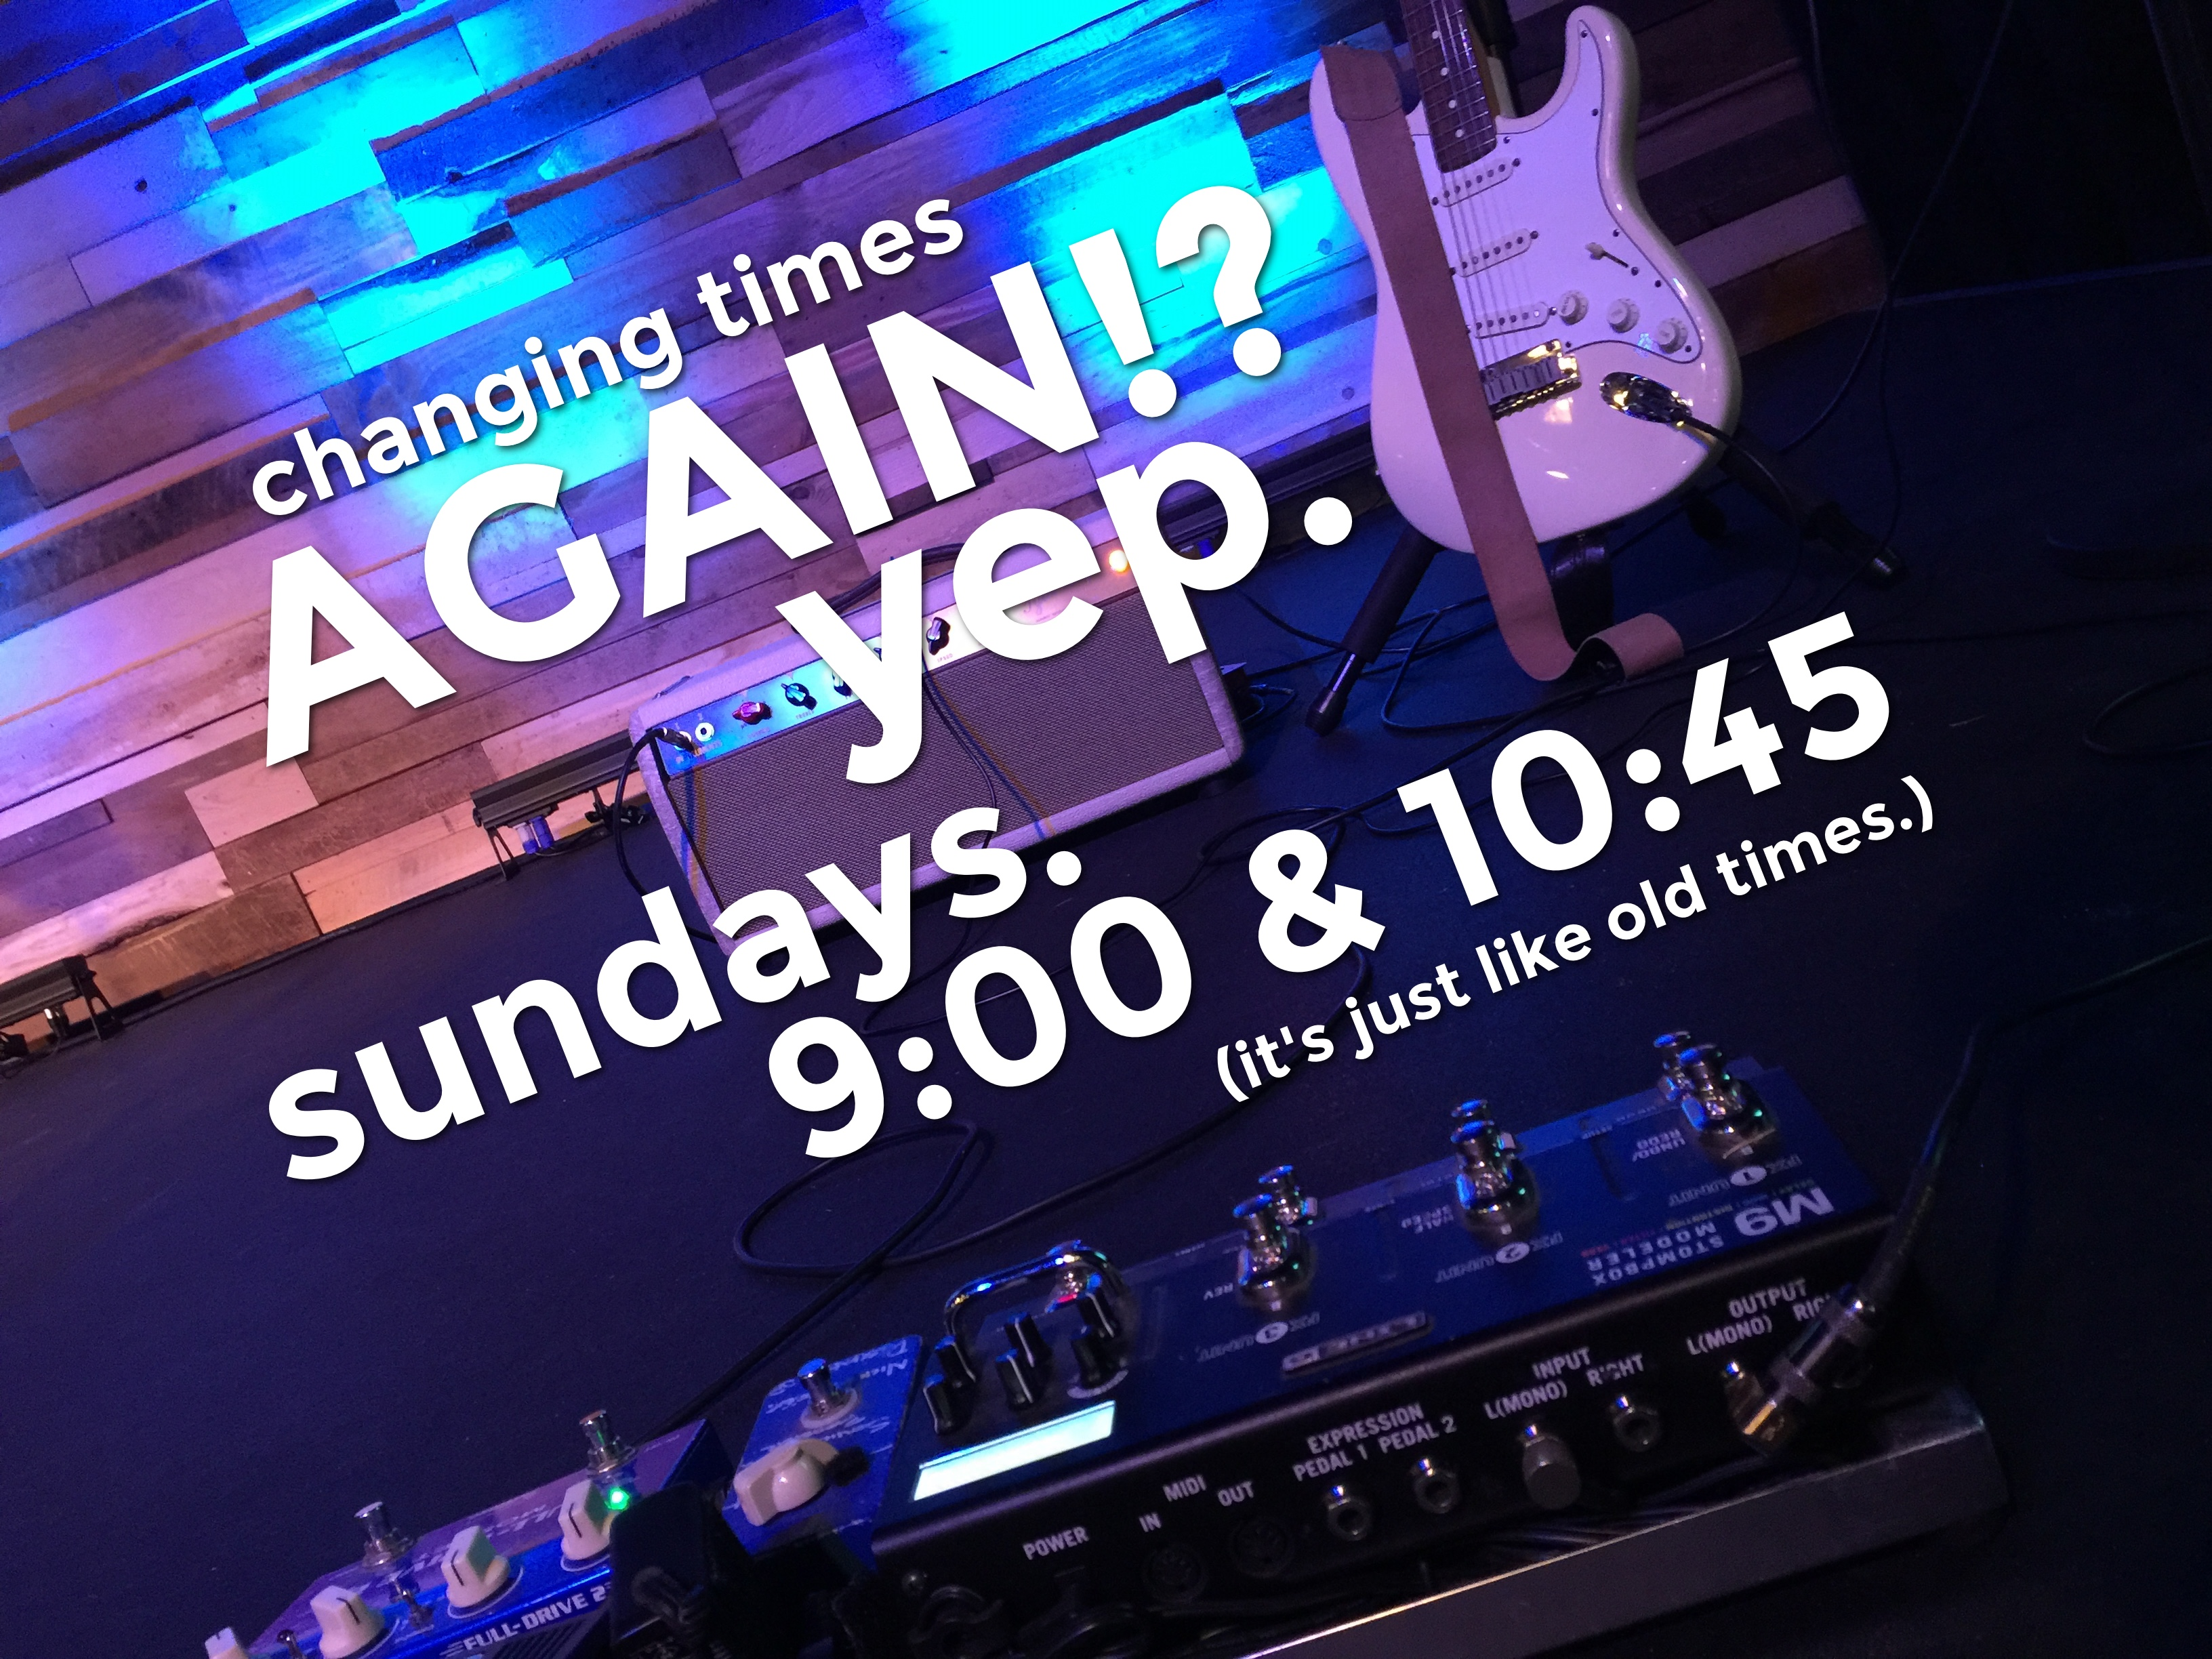 Grace Hills Church meets at 9:00 and 10:45 am on Sundays